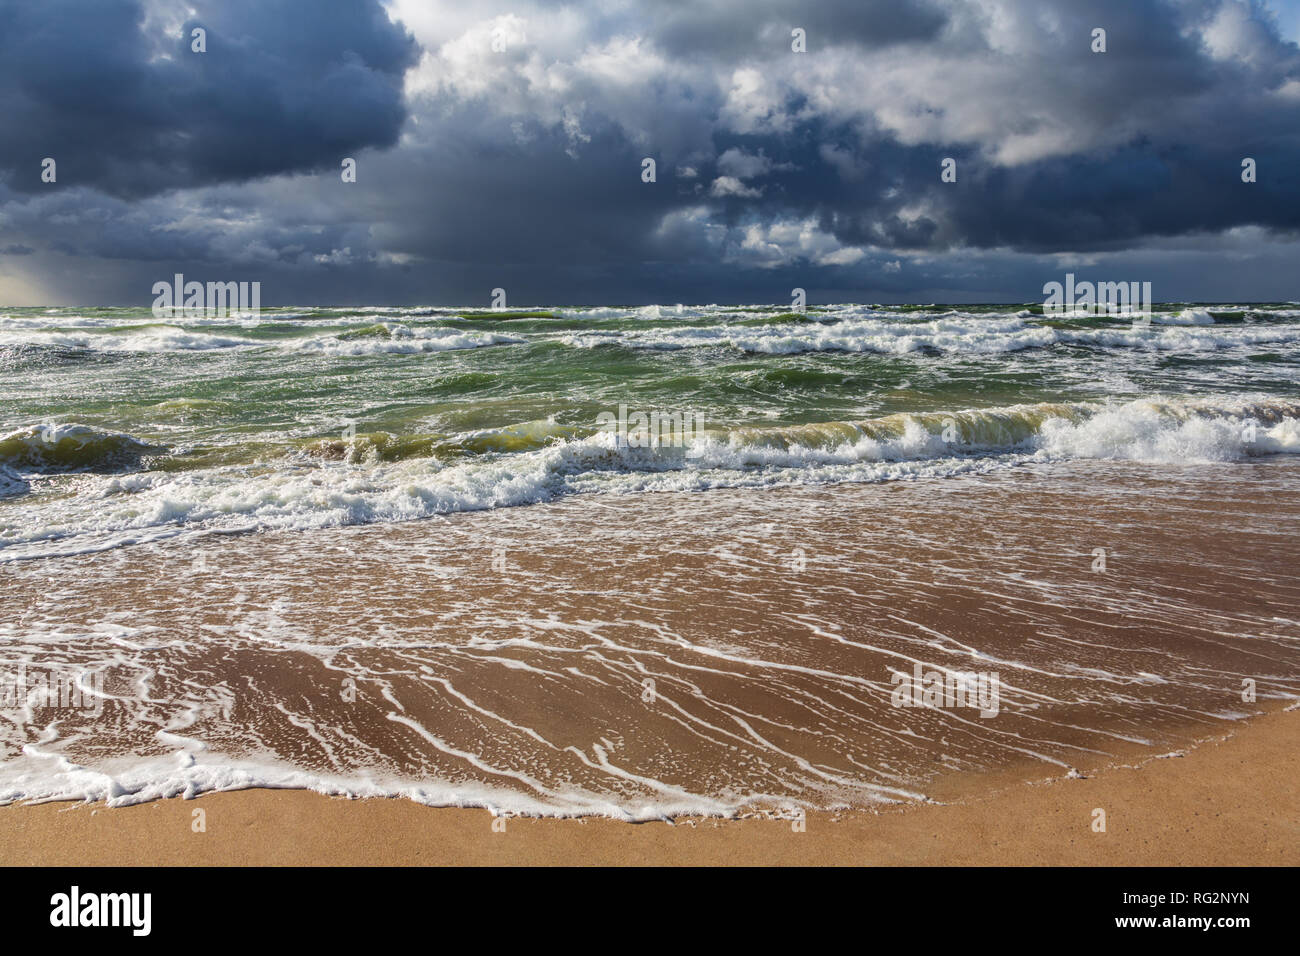 View from the beach to heavy dark rain clouds above the stormy green sea. - Stock Image